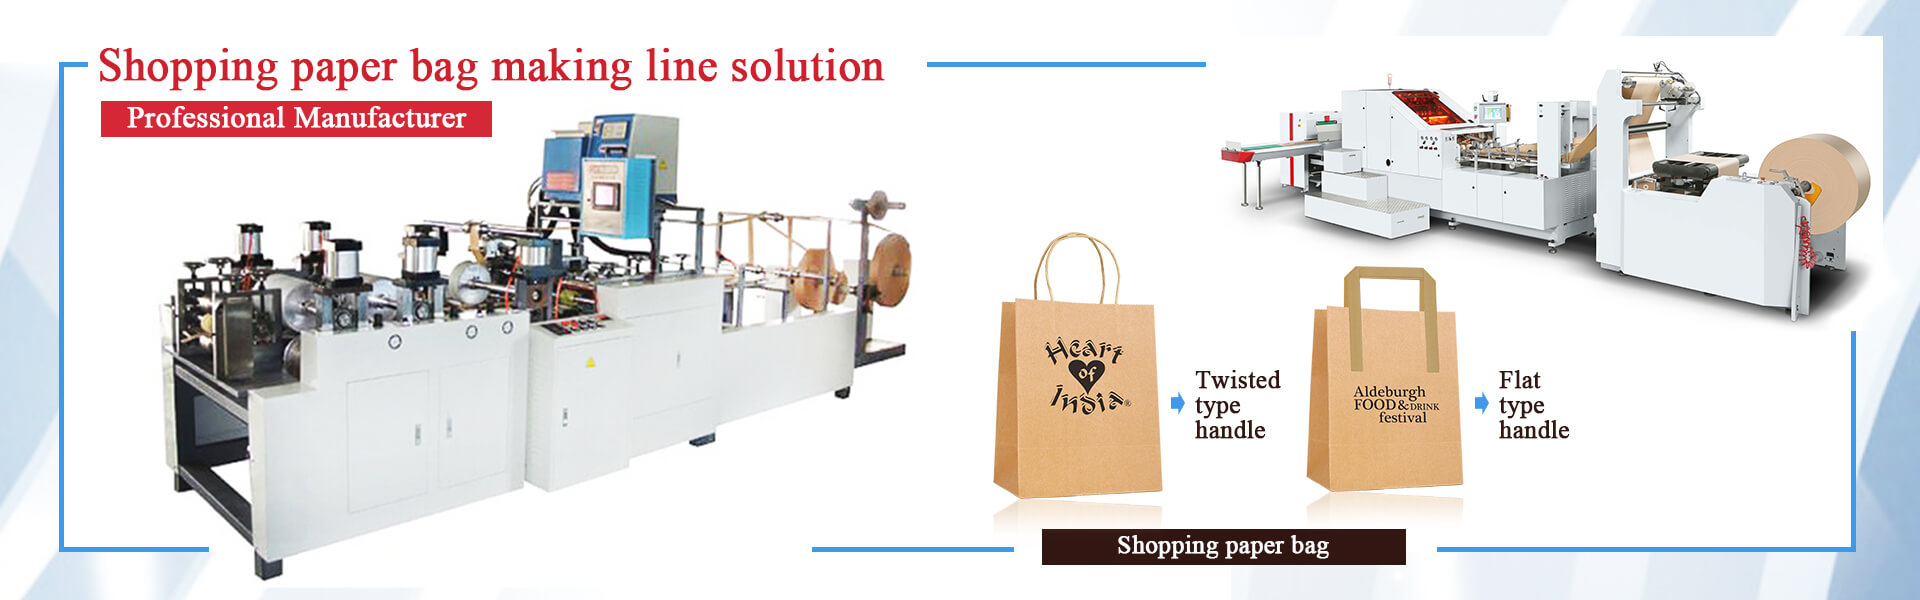 Shopping paper bag making line solution